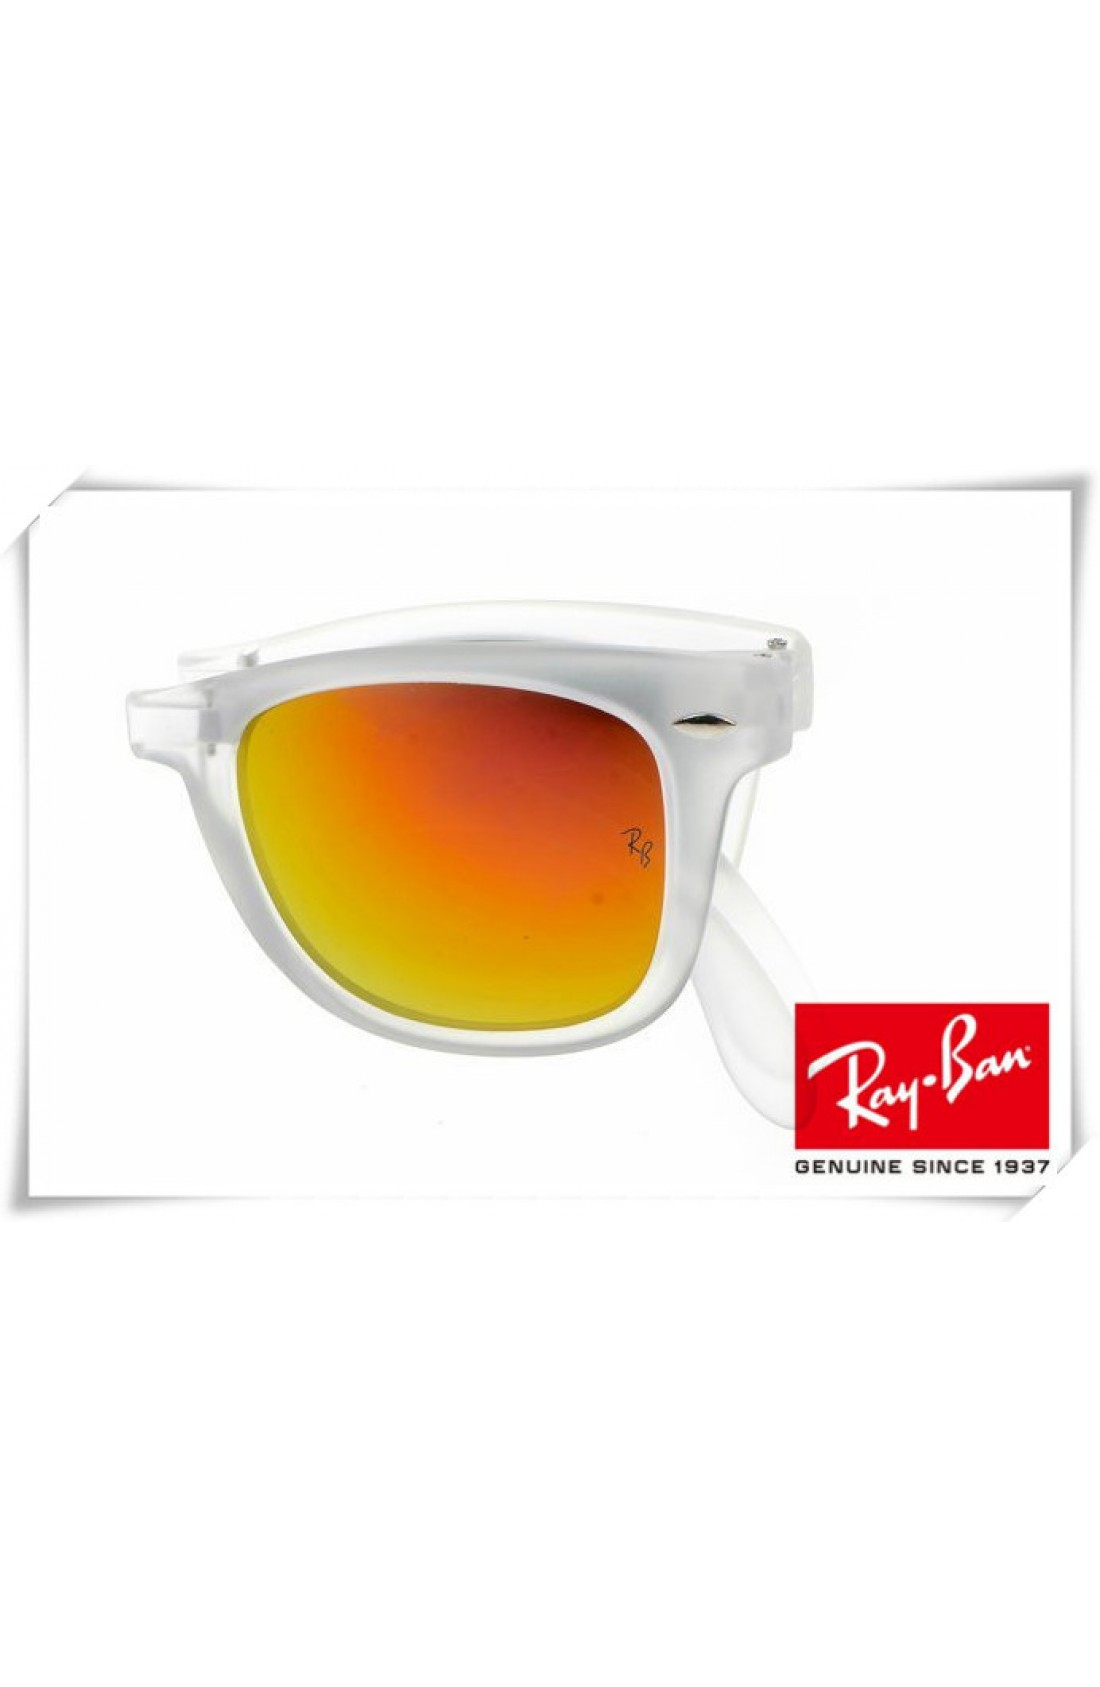 39b7e3bdb50 Fake Ray Ban RB4105 Folding Wayfarer Sunglasses Transparent Frame ...